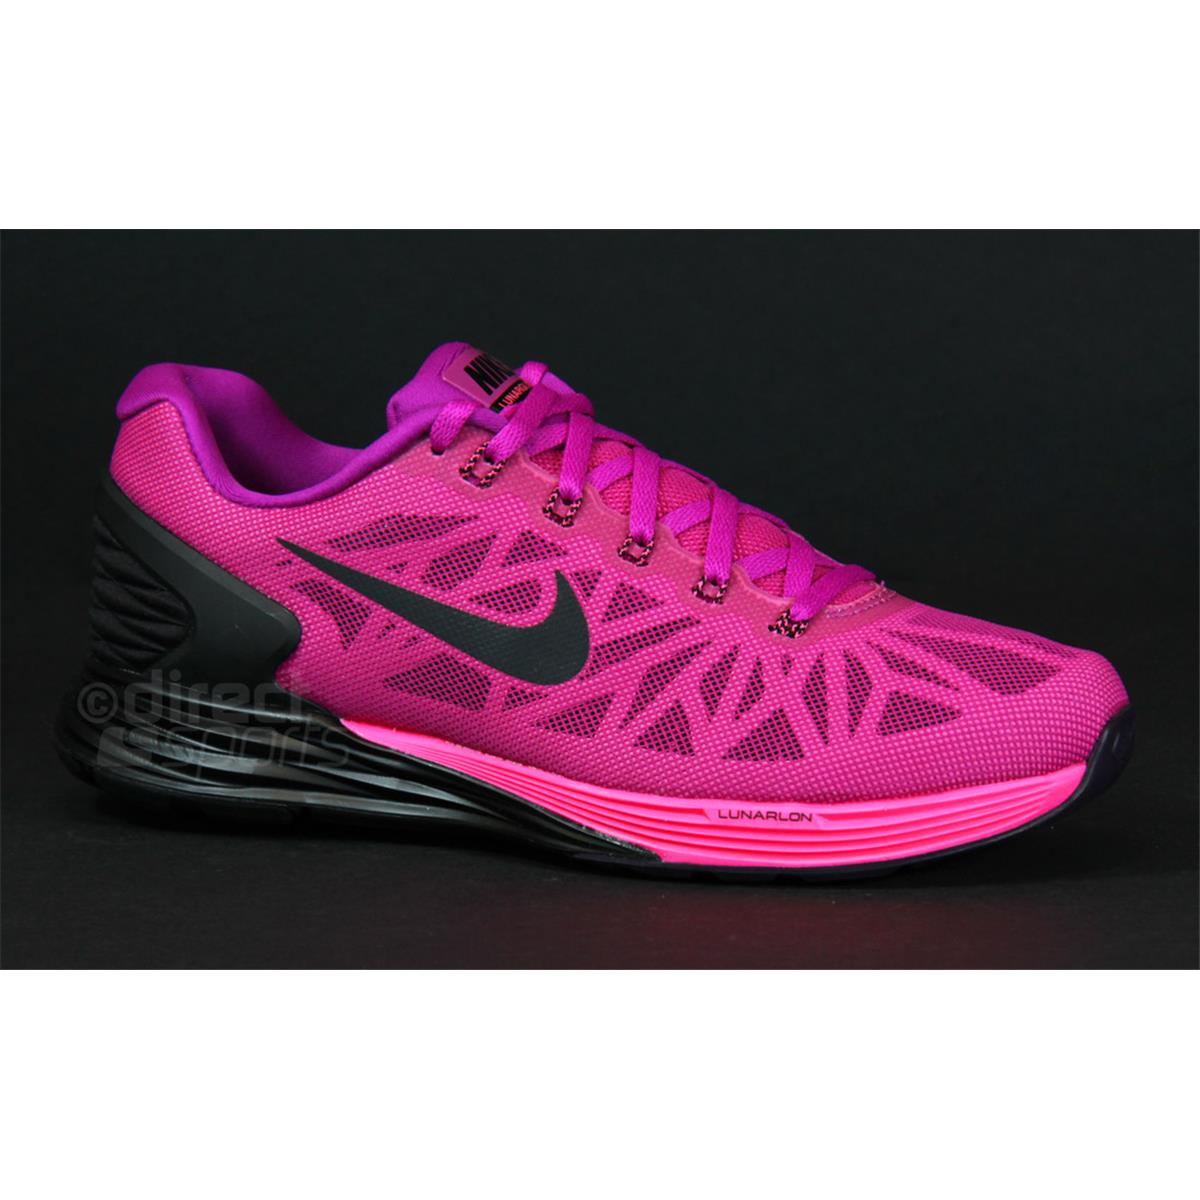 Nike Femmes Lunarglide 6 Chaussures - Fa14 Dimensions